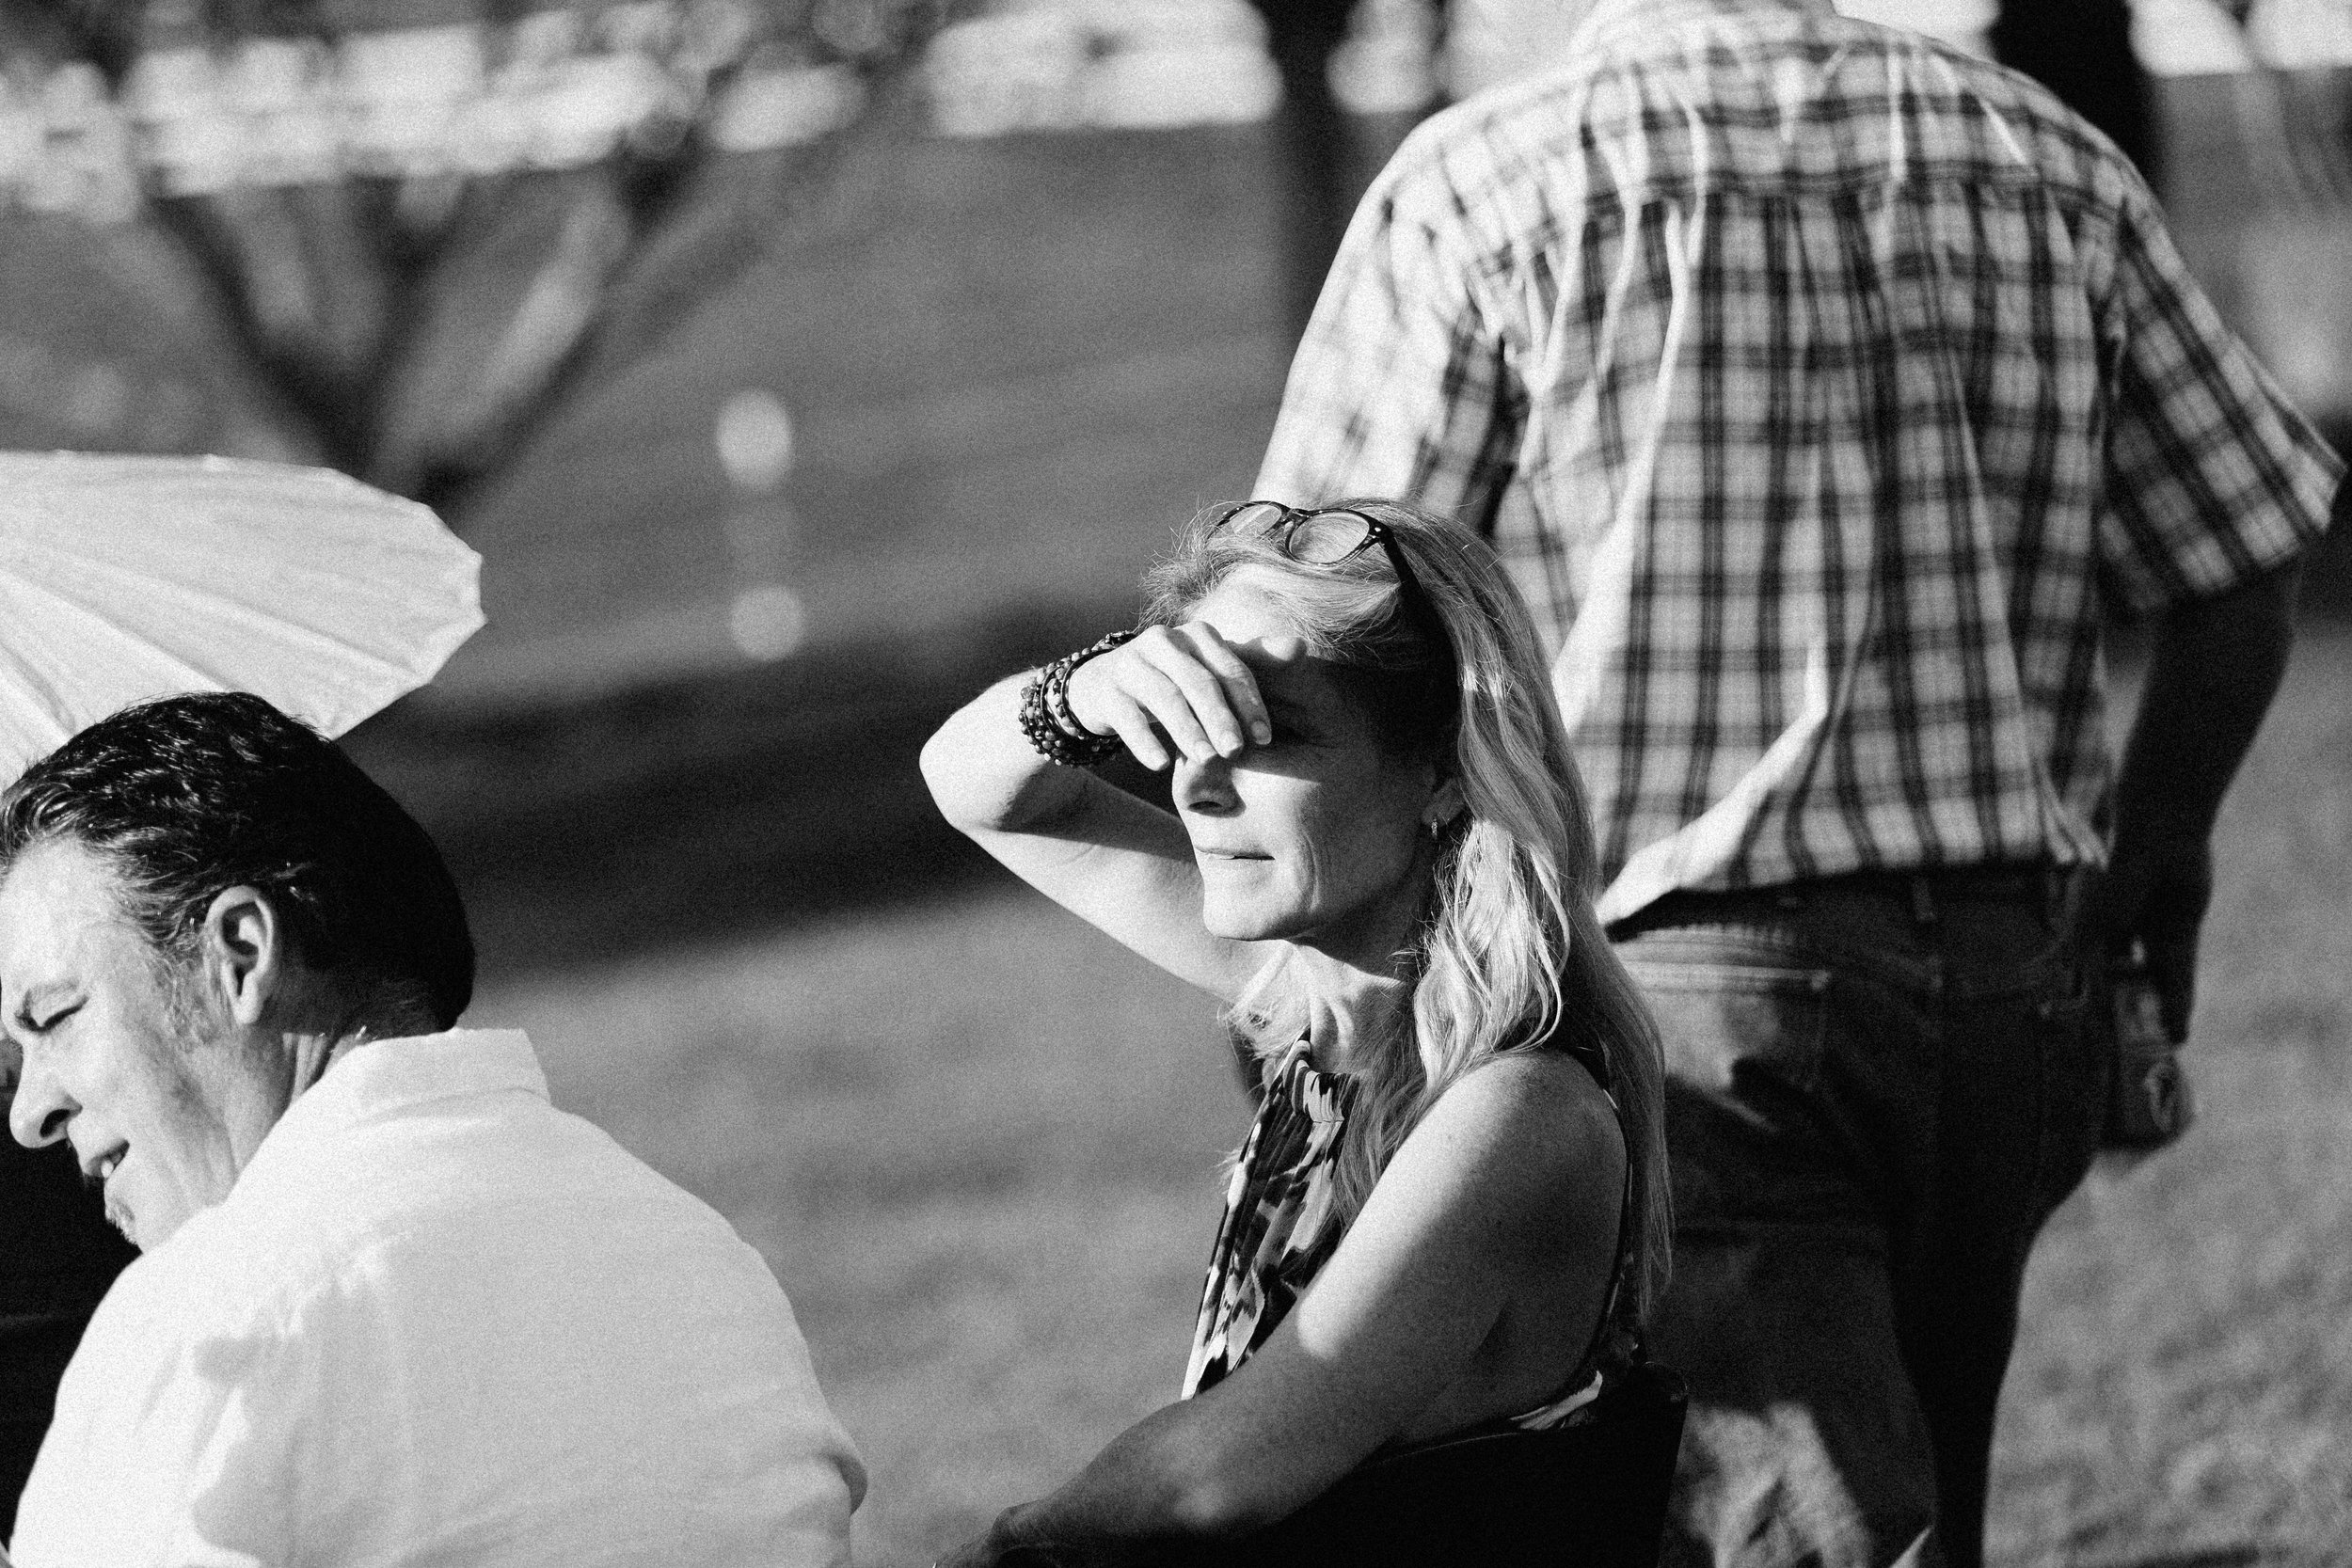 cleveland_georgia_mountain_laurel_farm_natural_classic_timeless_documentary_candid_wedding_emotional_photojournalism_river_west_1597.jpg